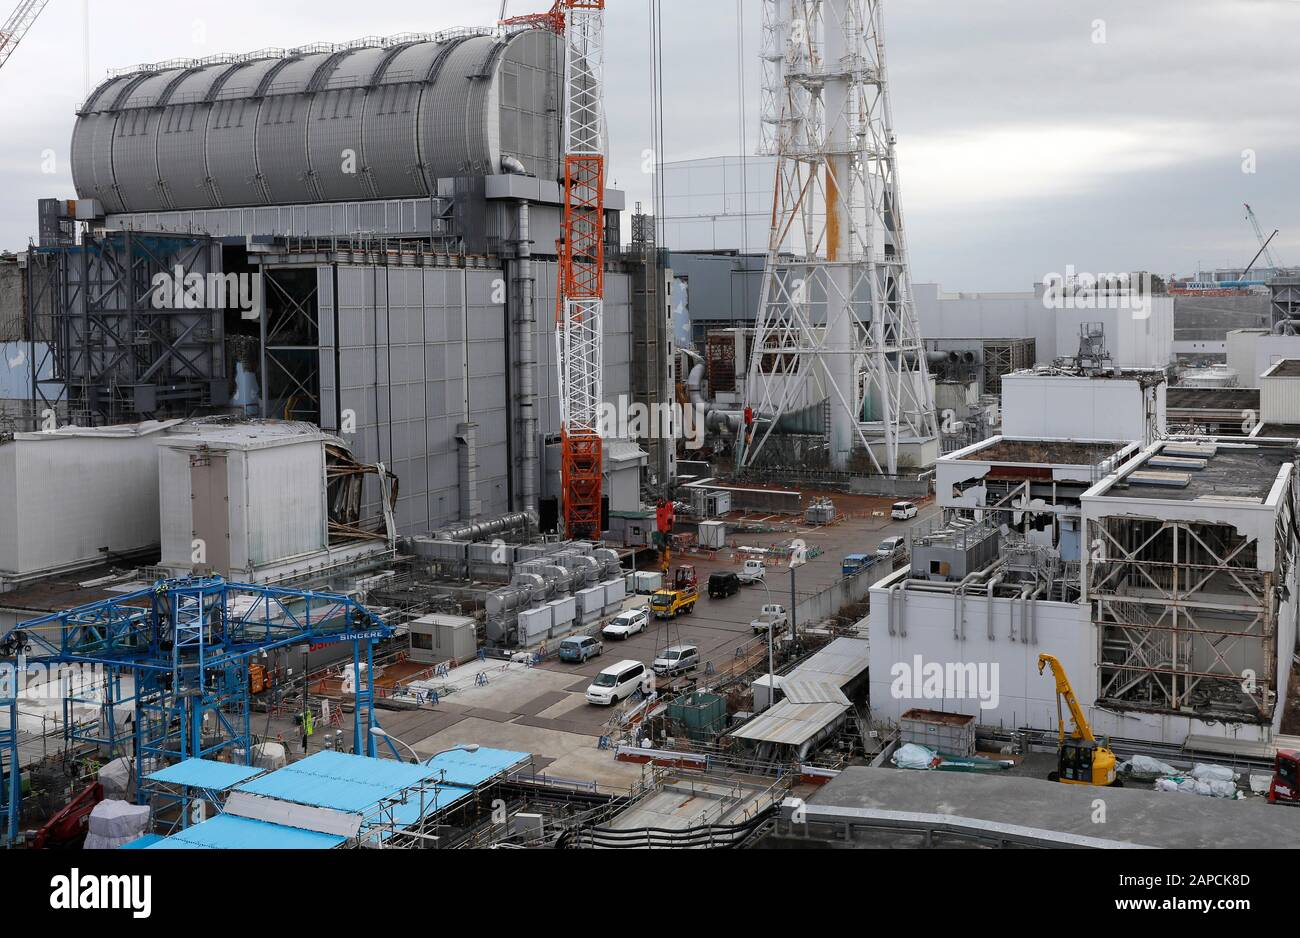 January 22, 2020, Okuma, Fukushima, Japan: Unit 3 (L) and Unit 4 (C-Rear) reactor houses are seen at tsunami-devastated Tokyo Electric Power Company (TEPCO) Fukushima Daiichi Nuclear Power Plant in Okuma town, Fukushima Prefecture, 22 January 2020. The storage tanks including water processed in the ALPS will be full around summer of 2022, TEPCO has told. Japanese government need to decide soon how manage the processed water still including tritium.  (Credit Image: © Kimimasa Mayama/POOL via ZUMA Wire) Stock Photo